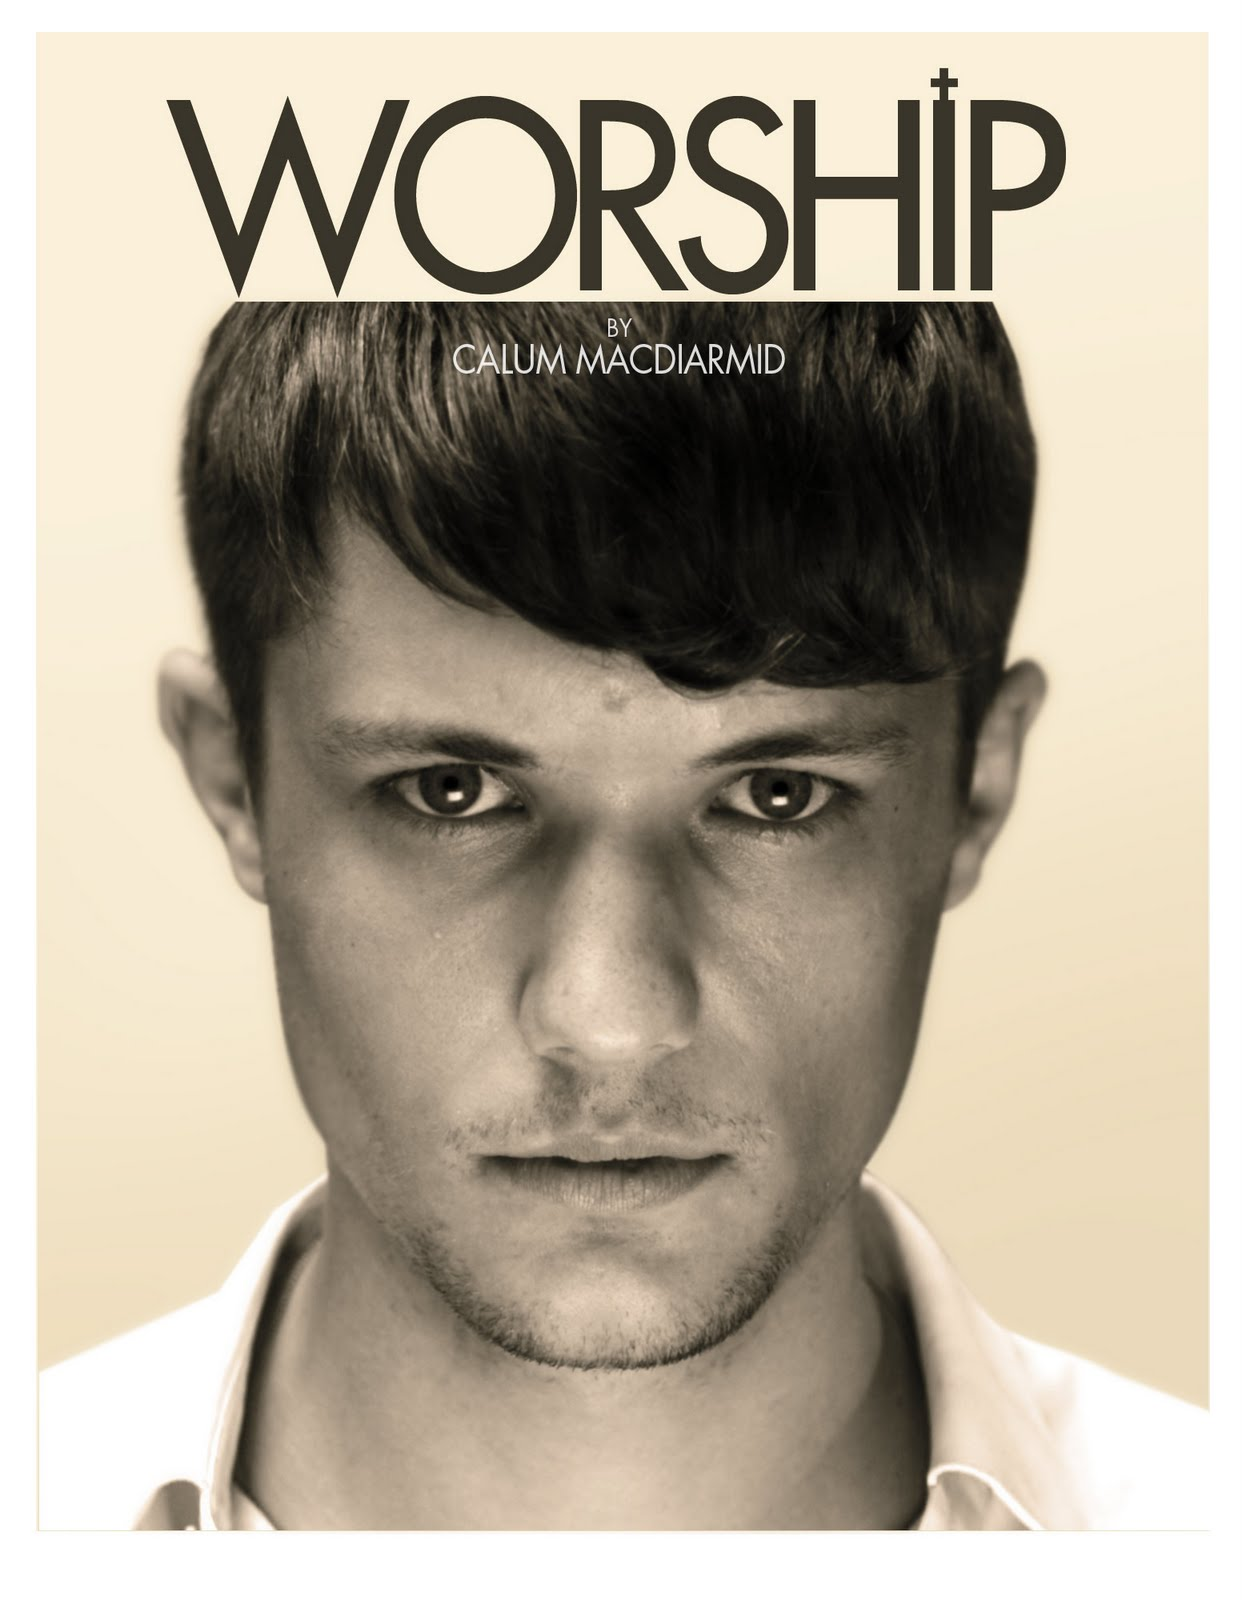 Directed by Calum Macdiarmid Music composed by Ben Smith  The tale of a psychiatrist who delves deep into his dreams to confront his fathers religion. Based on the book by Derry Macdiarmid.